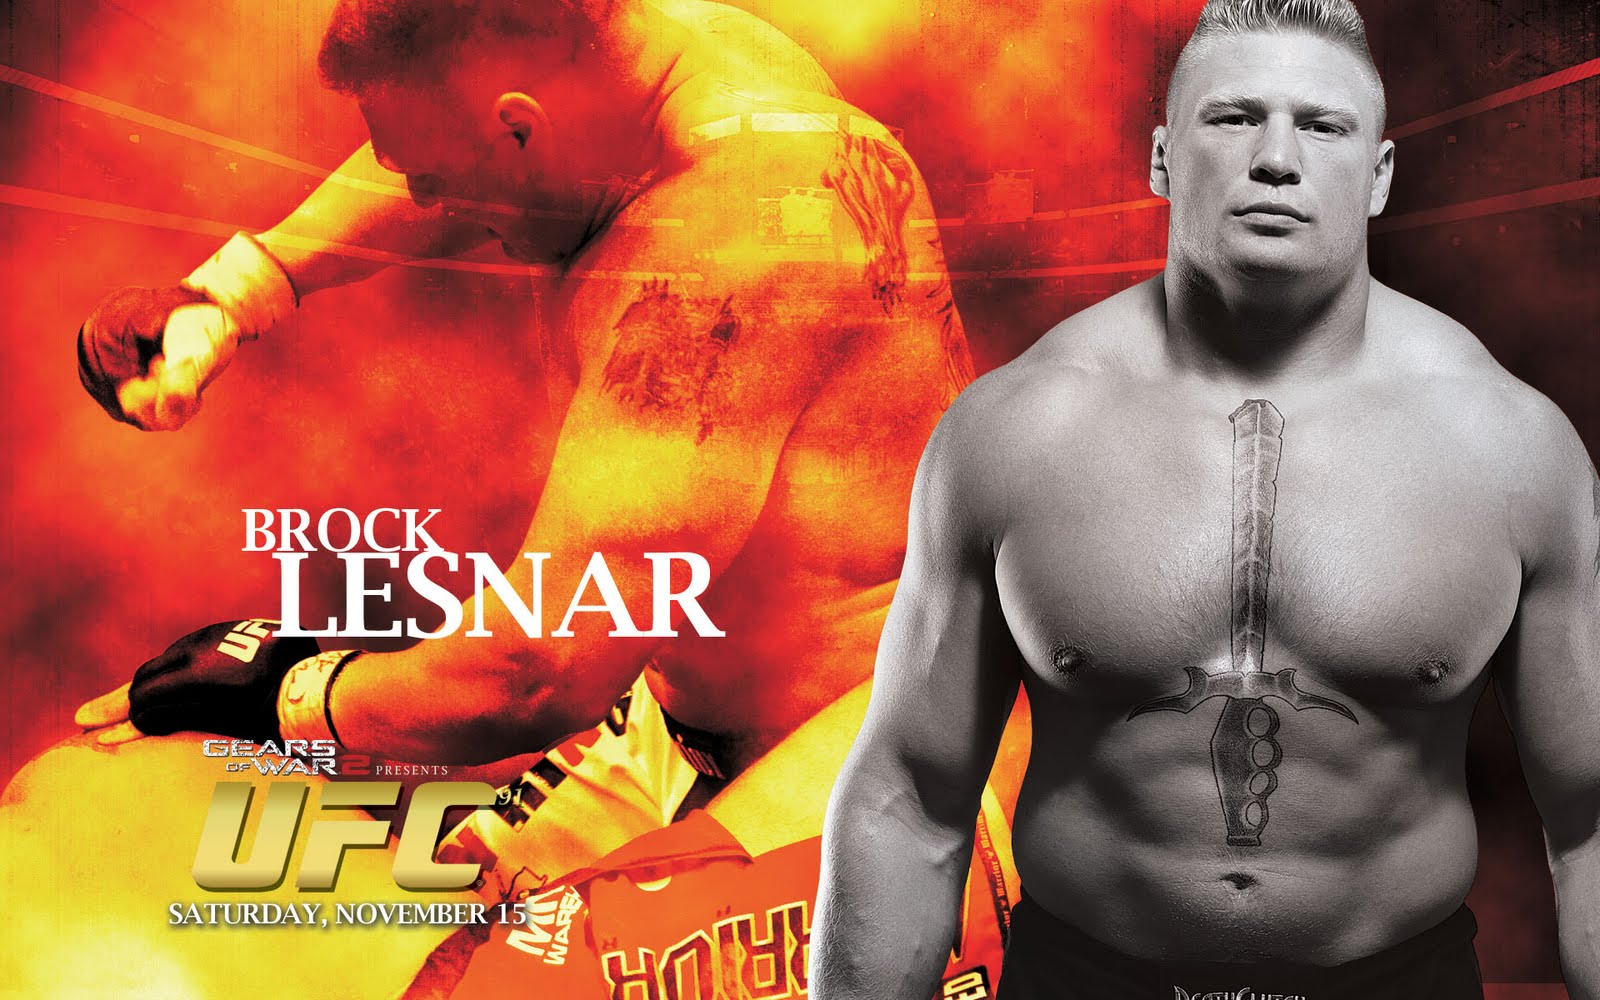 Brock Lesnar Wallpapers Cute Girls Celebrity Wallpaper 1600x1000